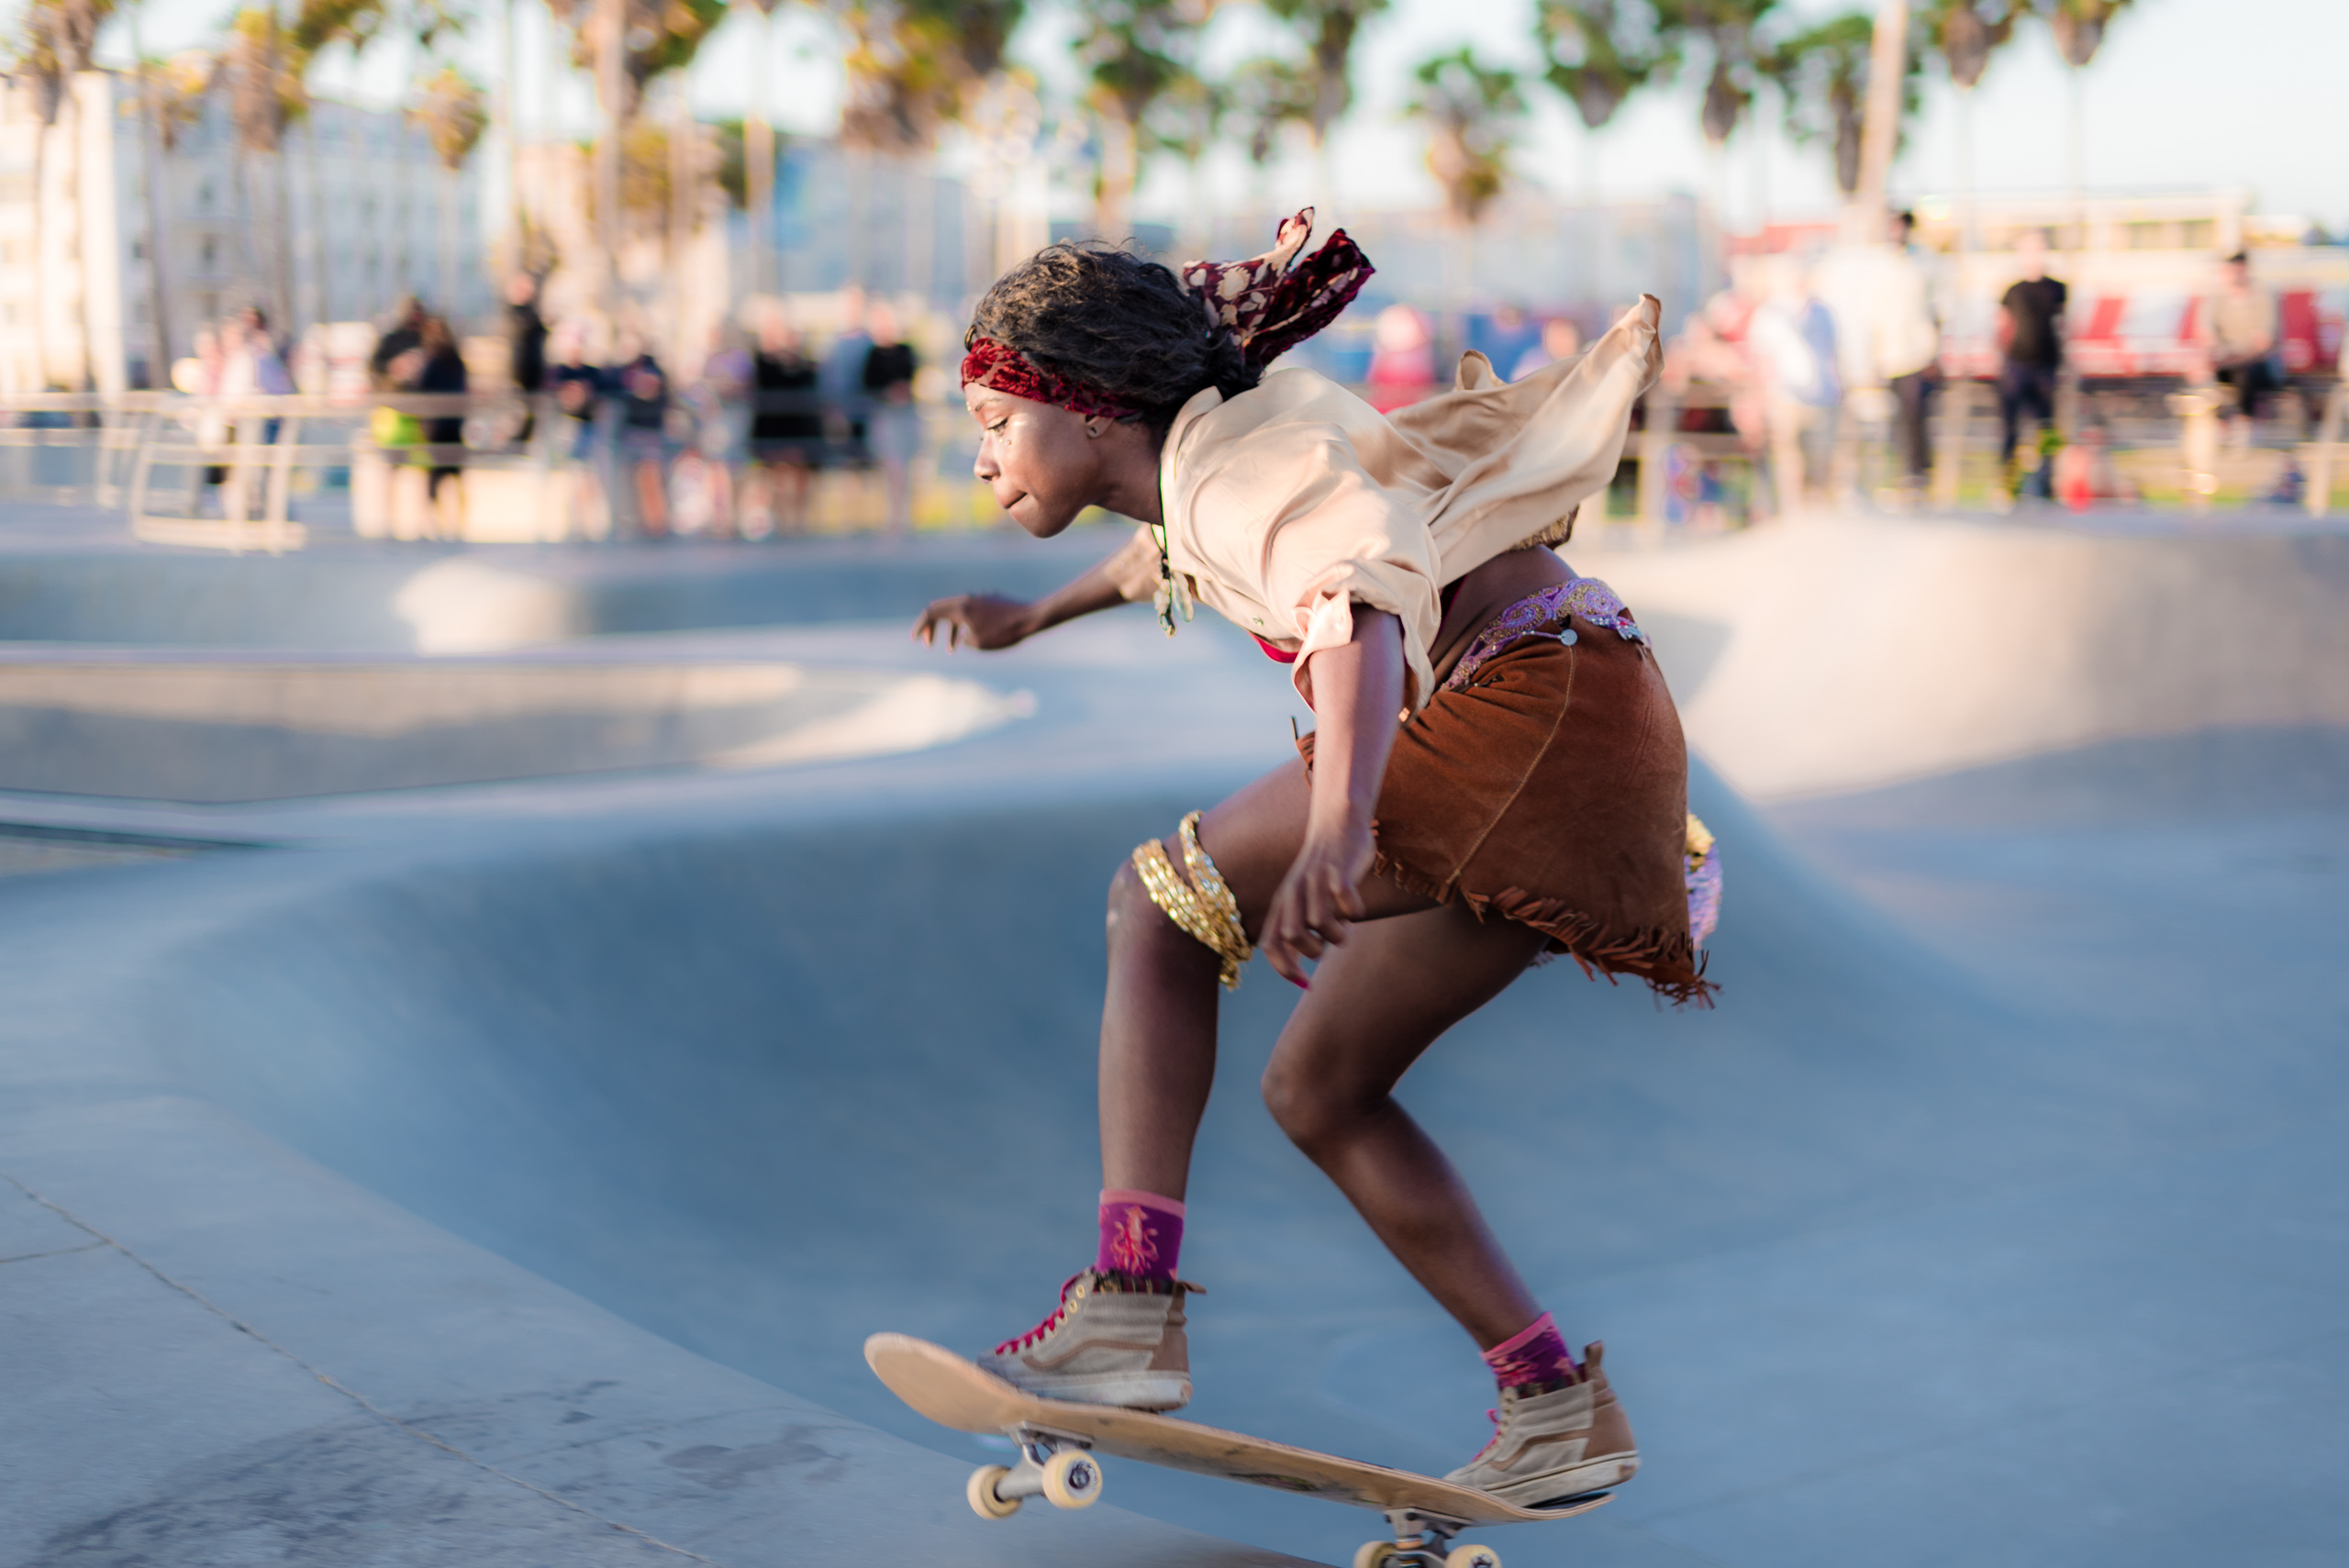 a woman skater rides through the turn at the Venice Skate Park